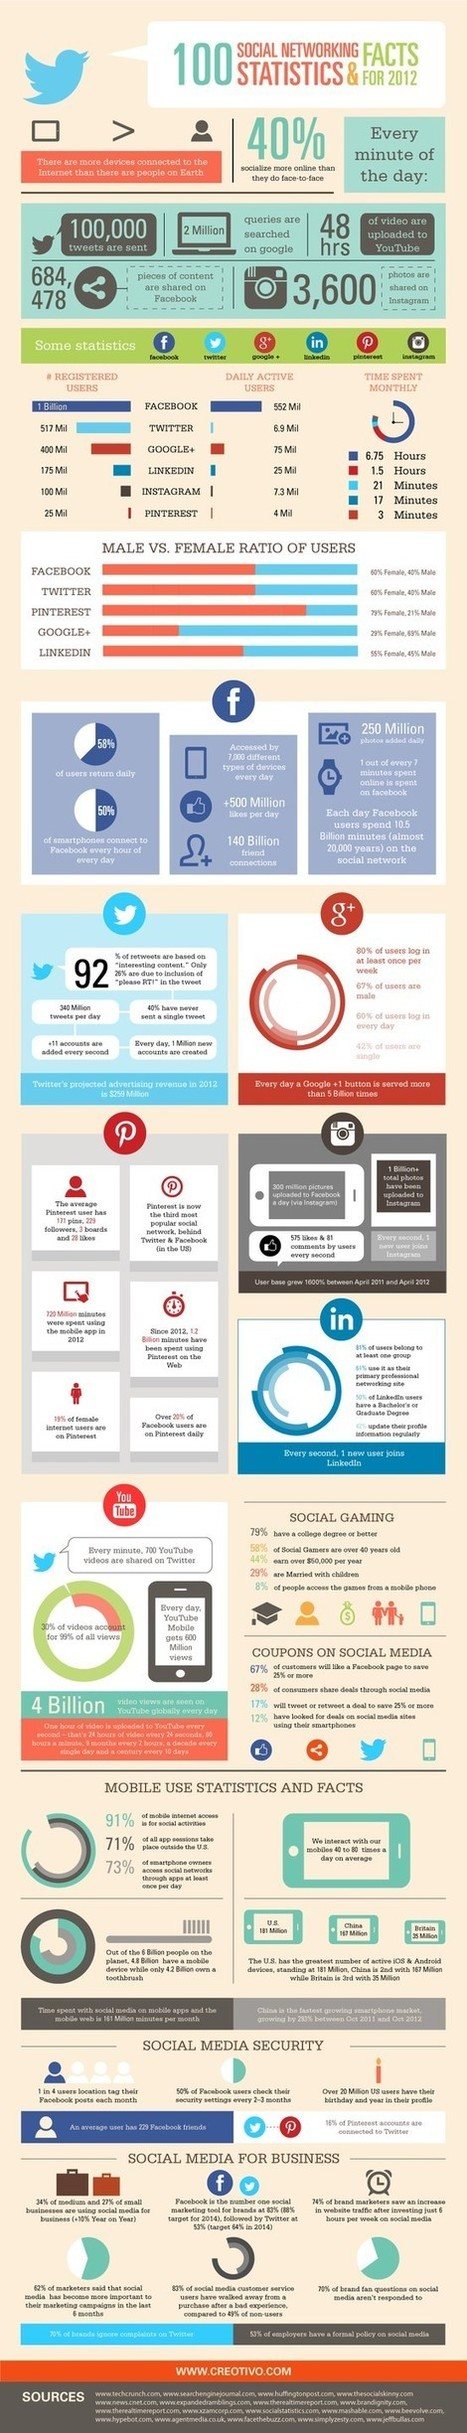 100 Social Networking Statistics & Facts | Socialholics Anonymous | Scoop.it